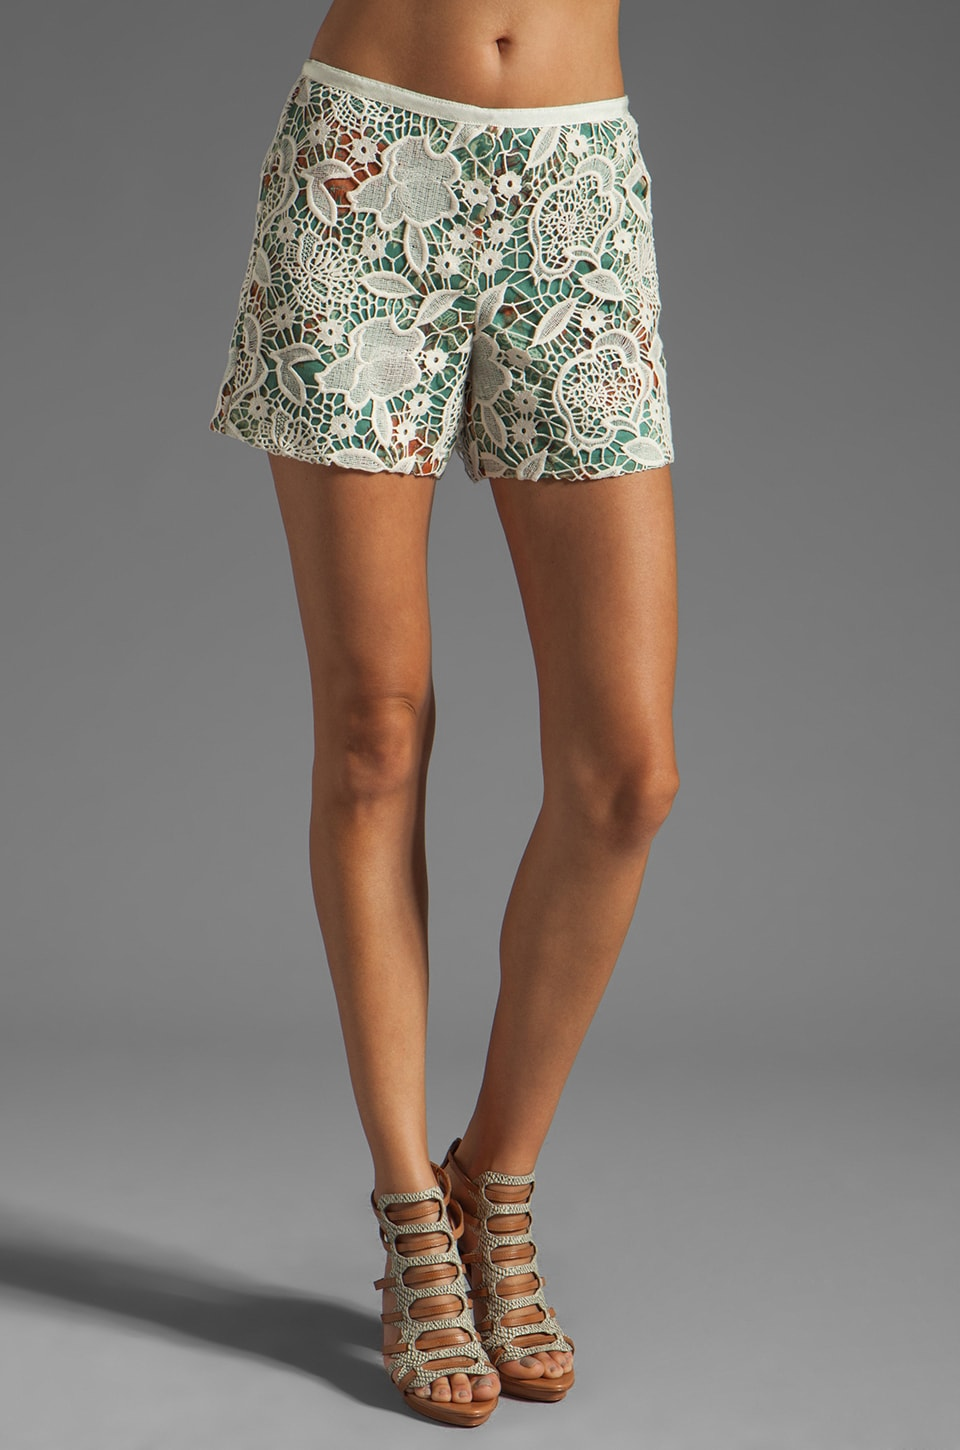 Anna Sui Filigree Print Crinkle Chiffon and Lace Shorts in Jade Multi